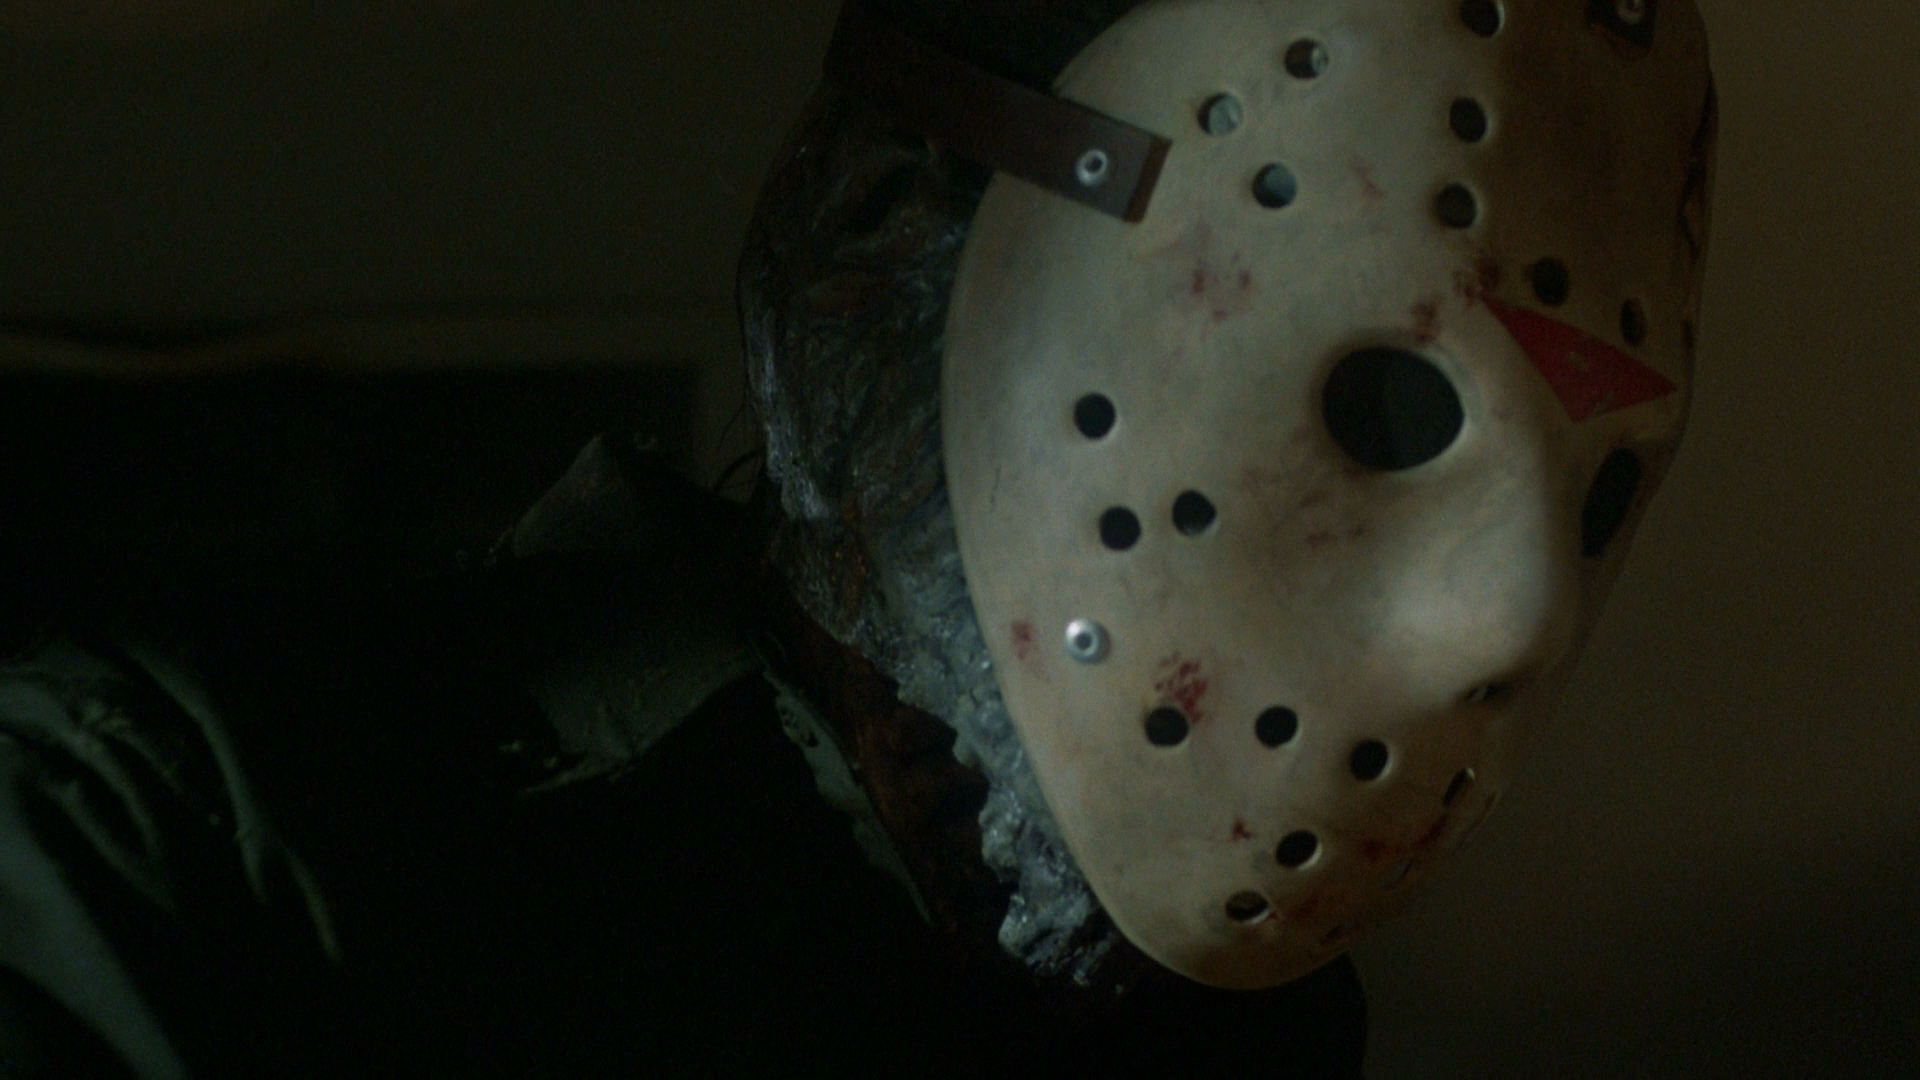 Friday the 13th 1980 hd wallpaper background image - Friday the thirteenth wallpaper ...